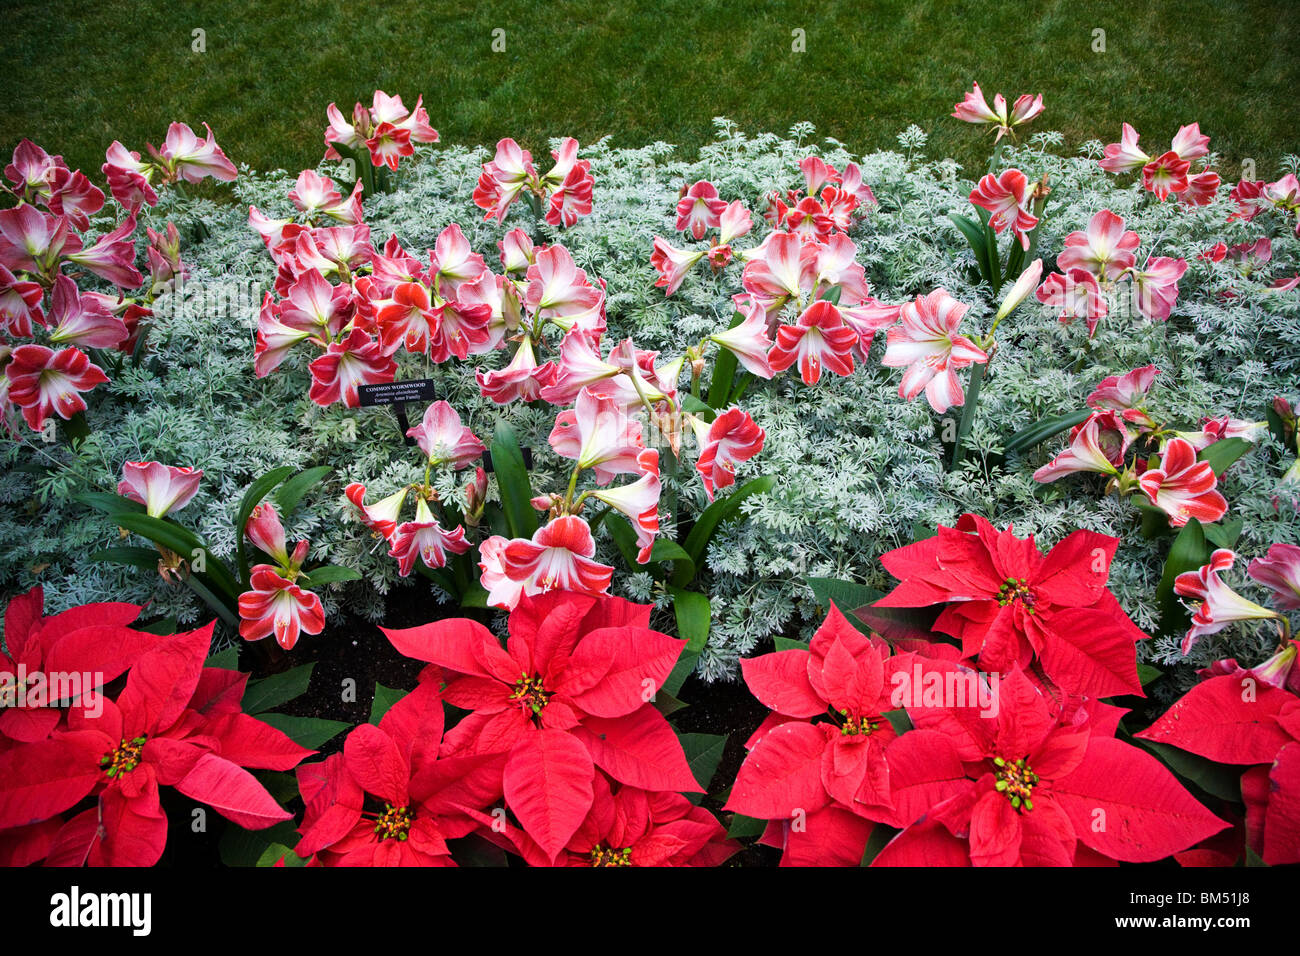 Poinsettia and Amaryllis (Hippeastrum, Intokazi) Longwood Gardens, former Du Pont estate, Kennett Square, Pennsylvania, Stock Photo